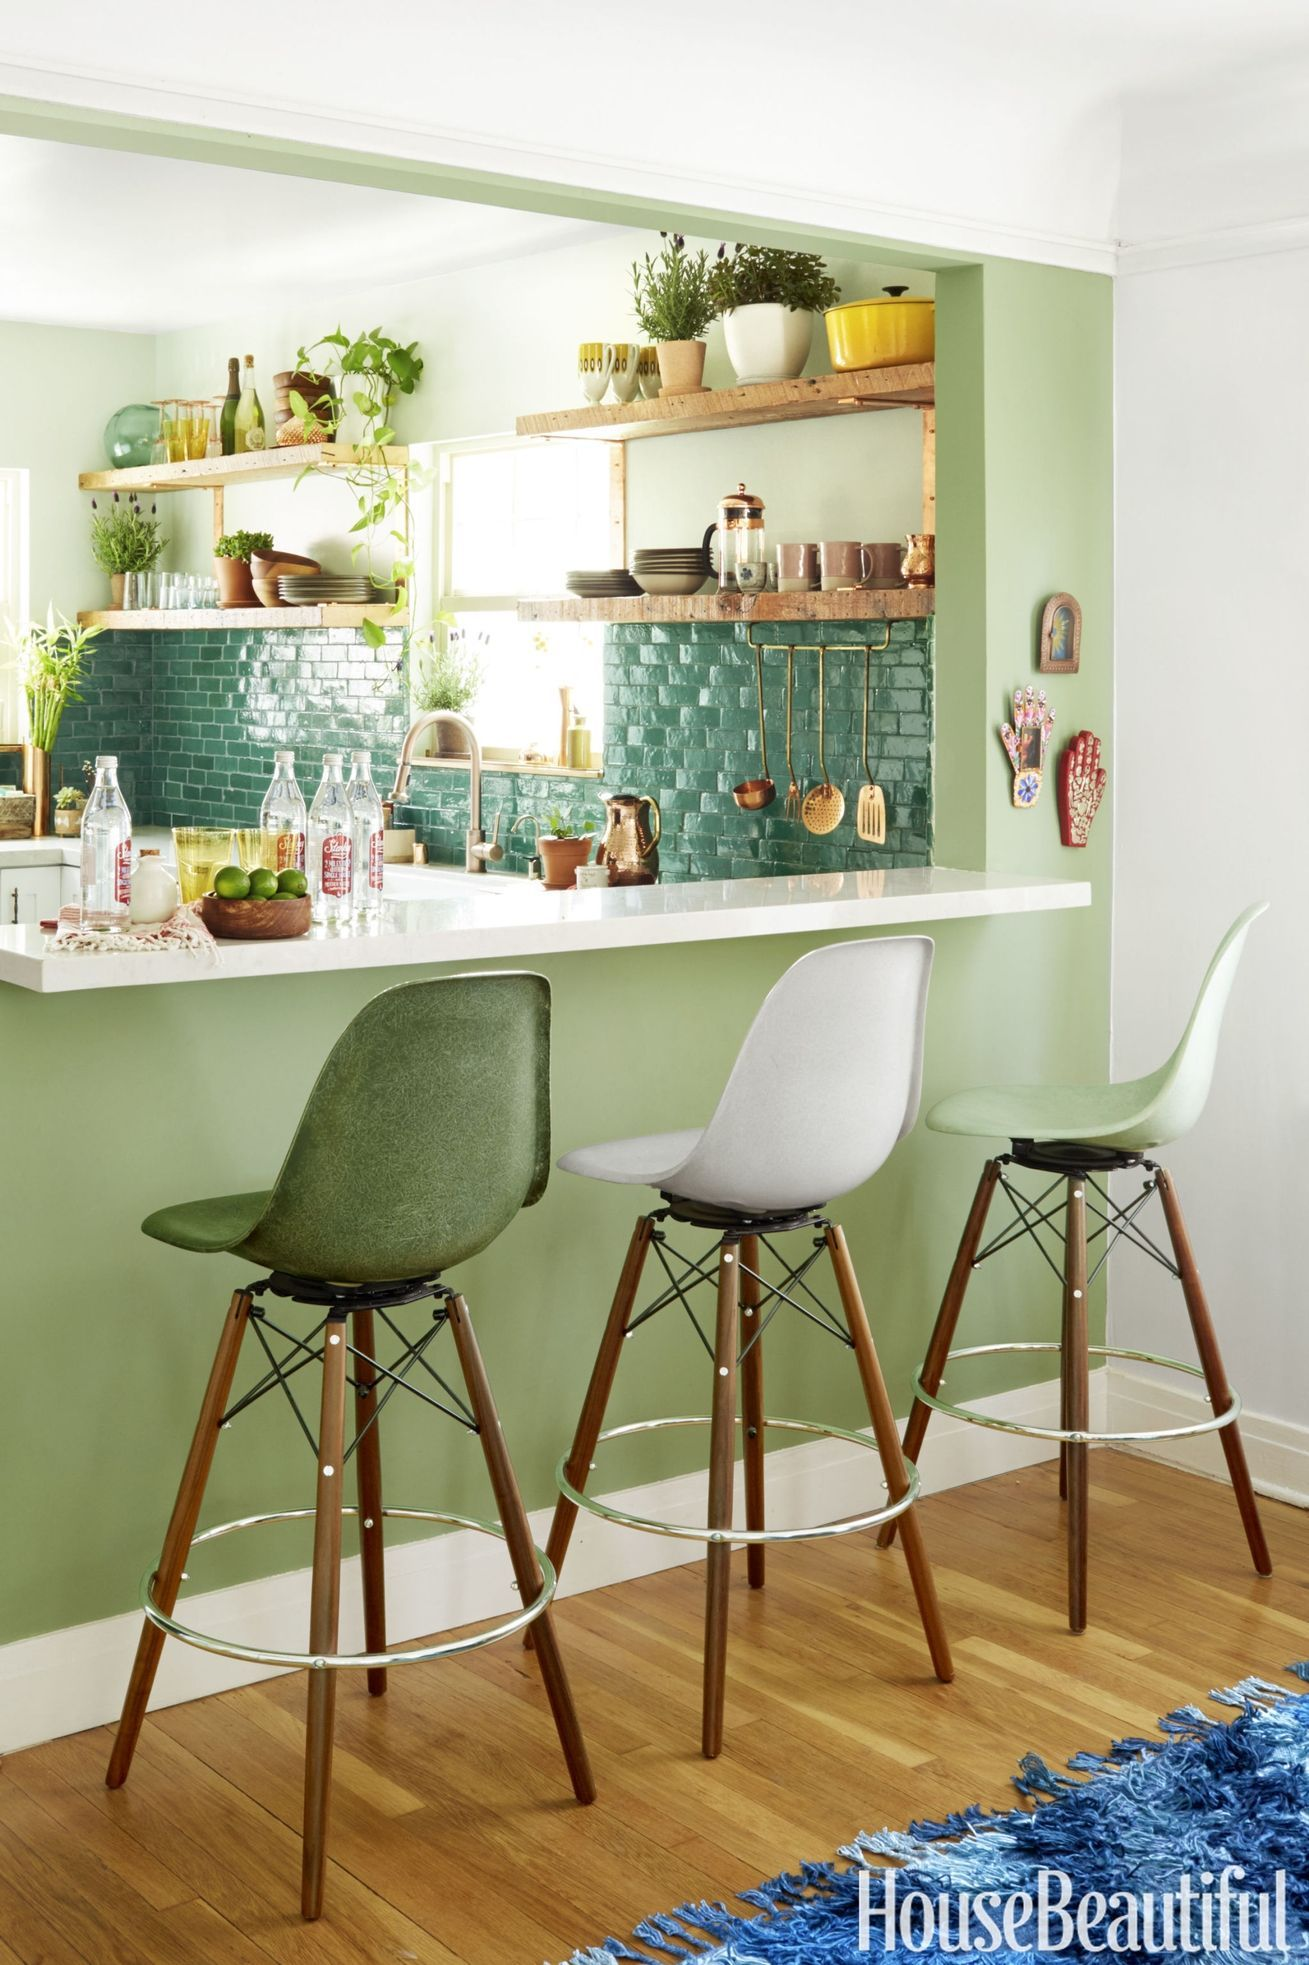 Paint colors for furniture Green Kitchen Paint Colors Green House Beautiful Best Green Paint Colors Shades Of Green Paint